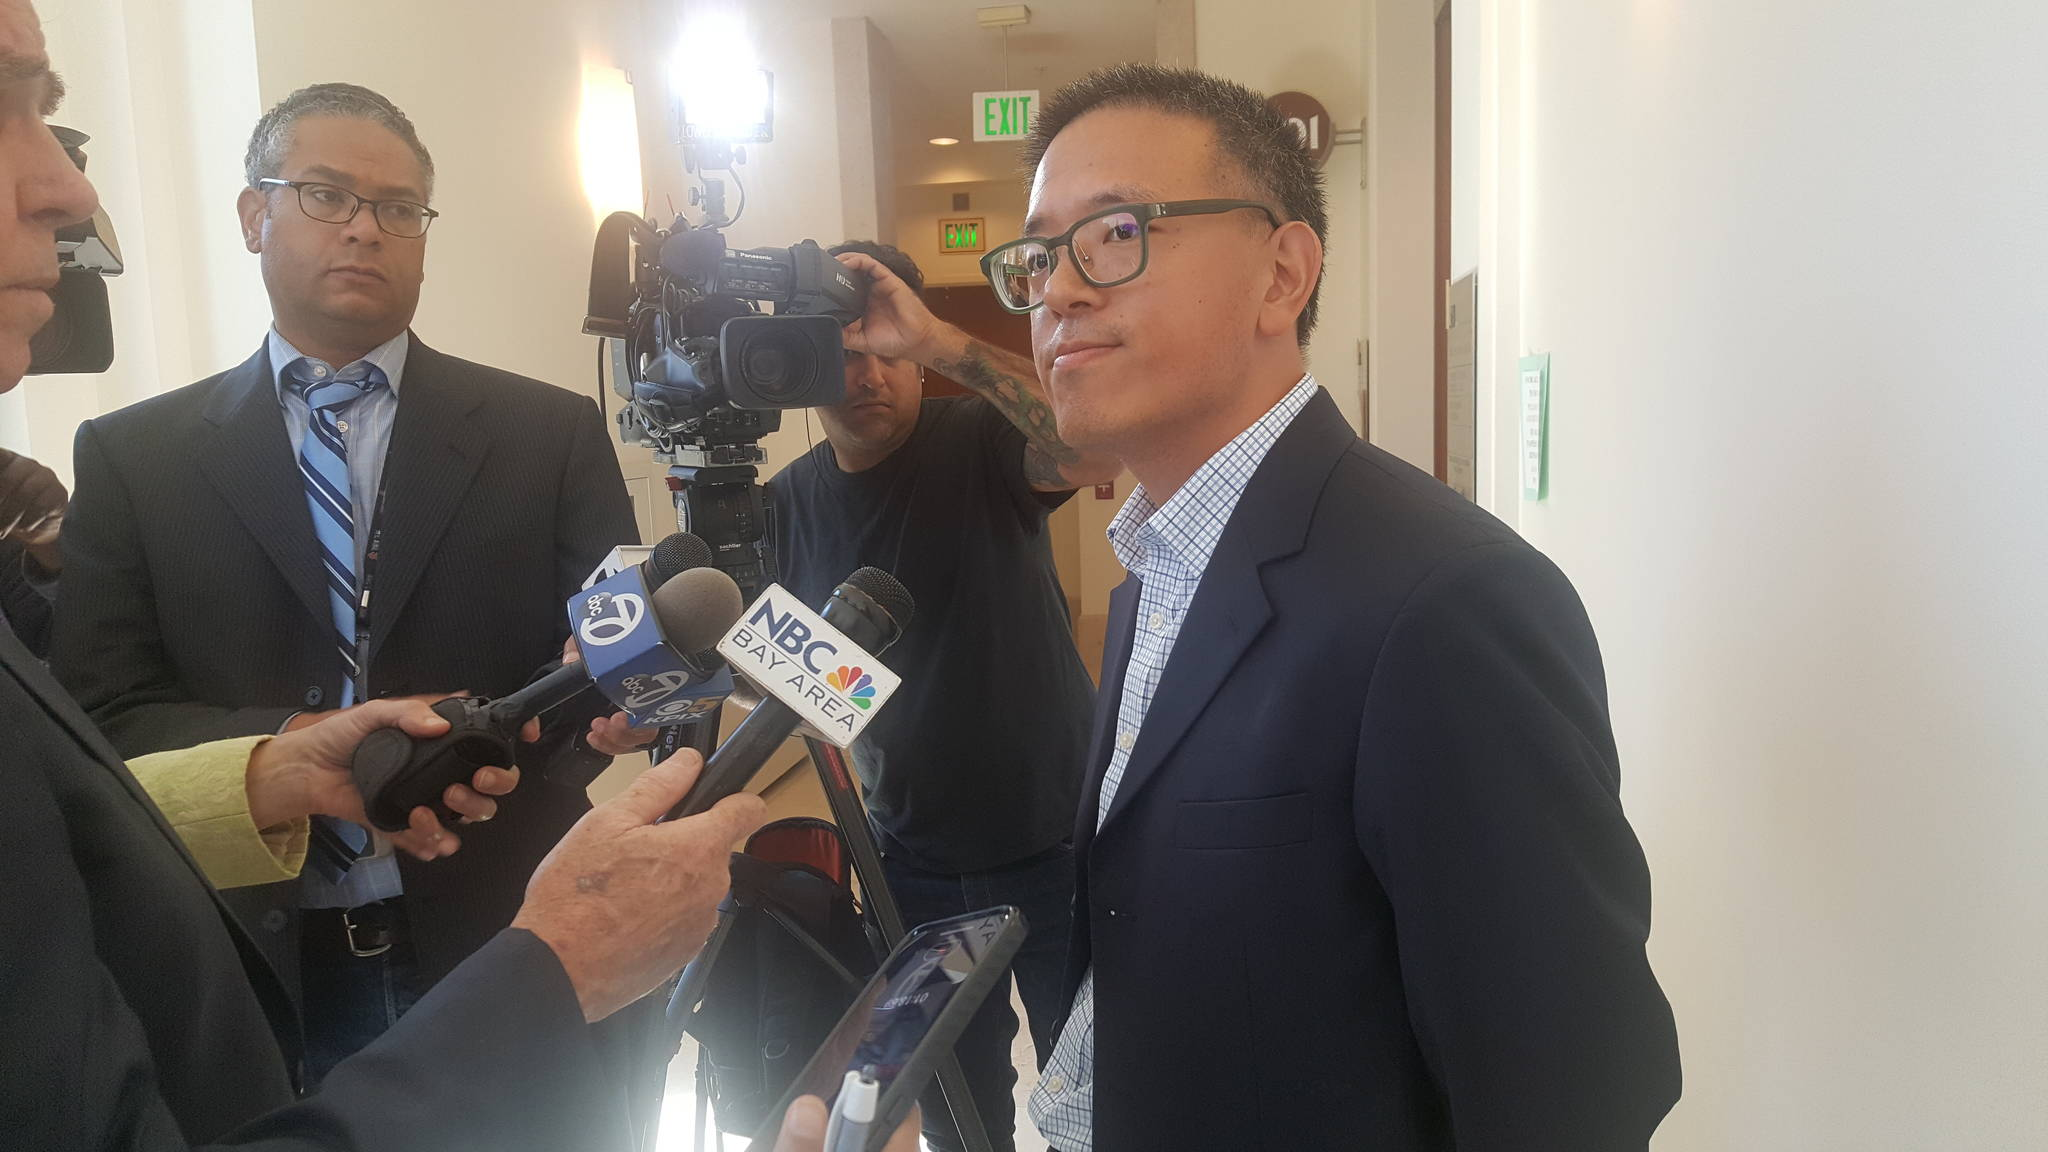 South Beach resident Wallace Lee, a member of Safe Embarcadero for All, discusses with media why he opposes the waterfront Navigation Center. (Joshua Sabatini/S.F. Examiner)